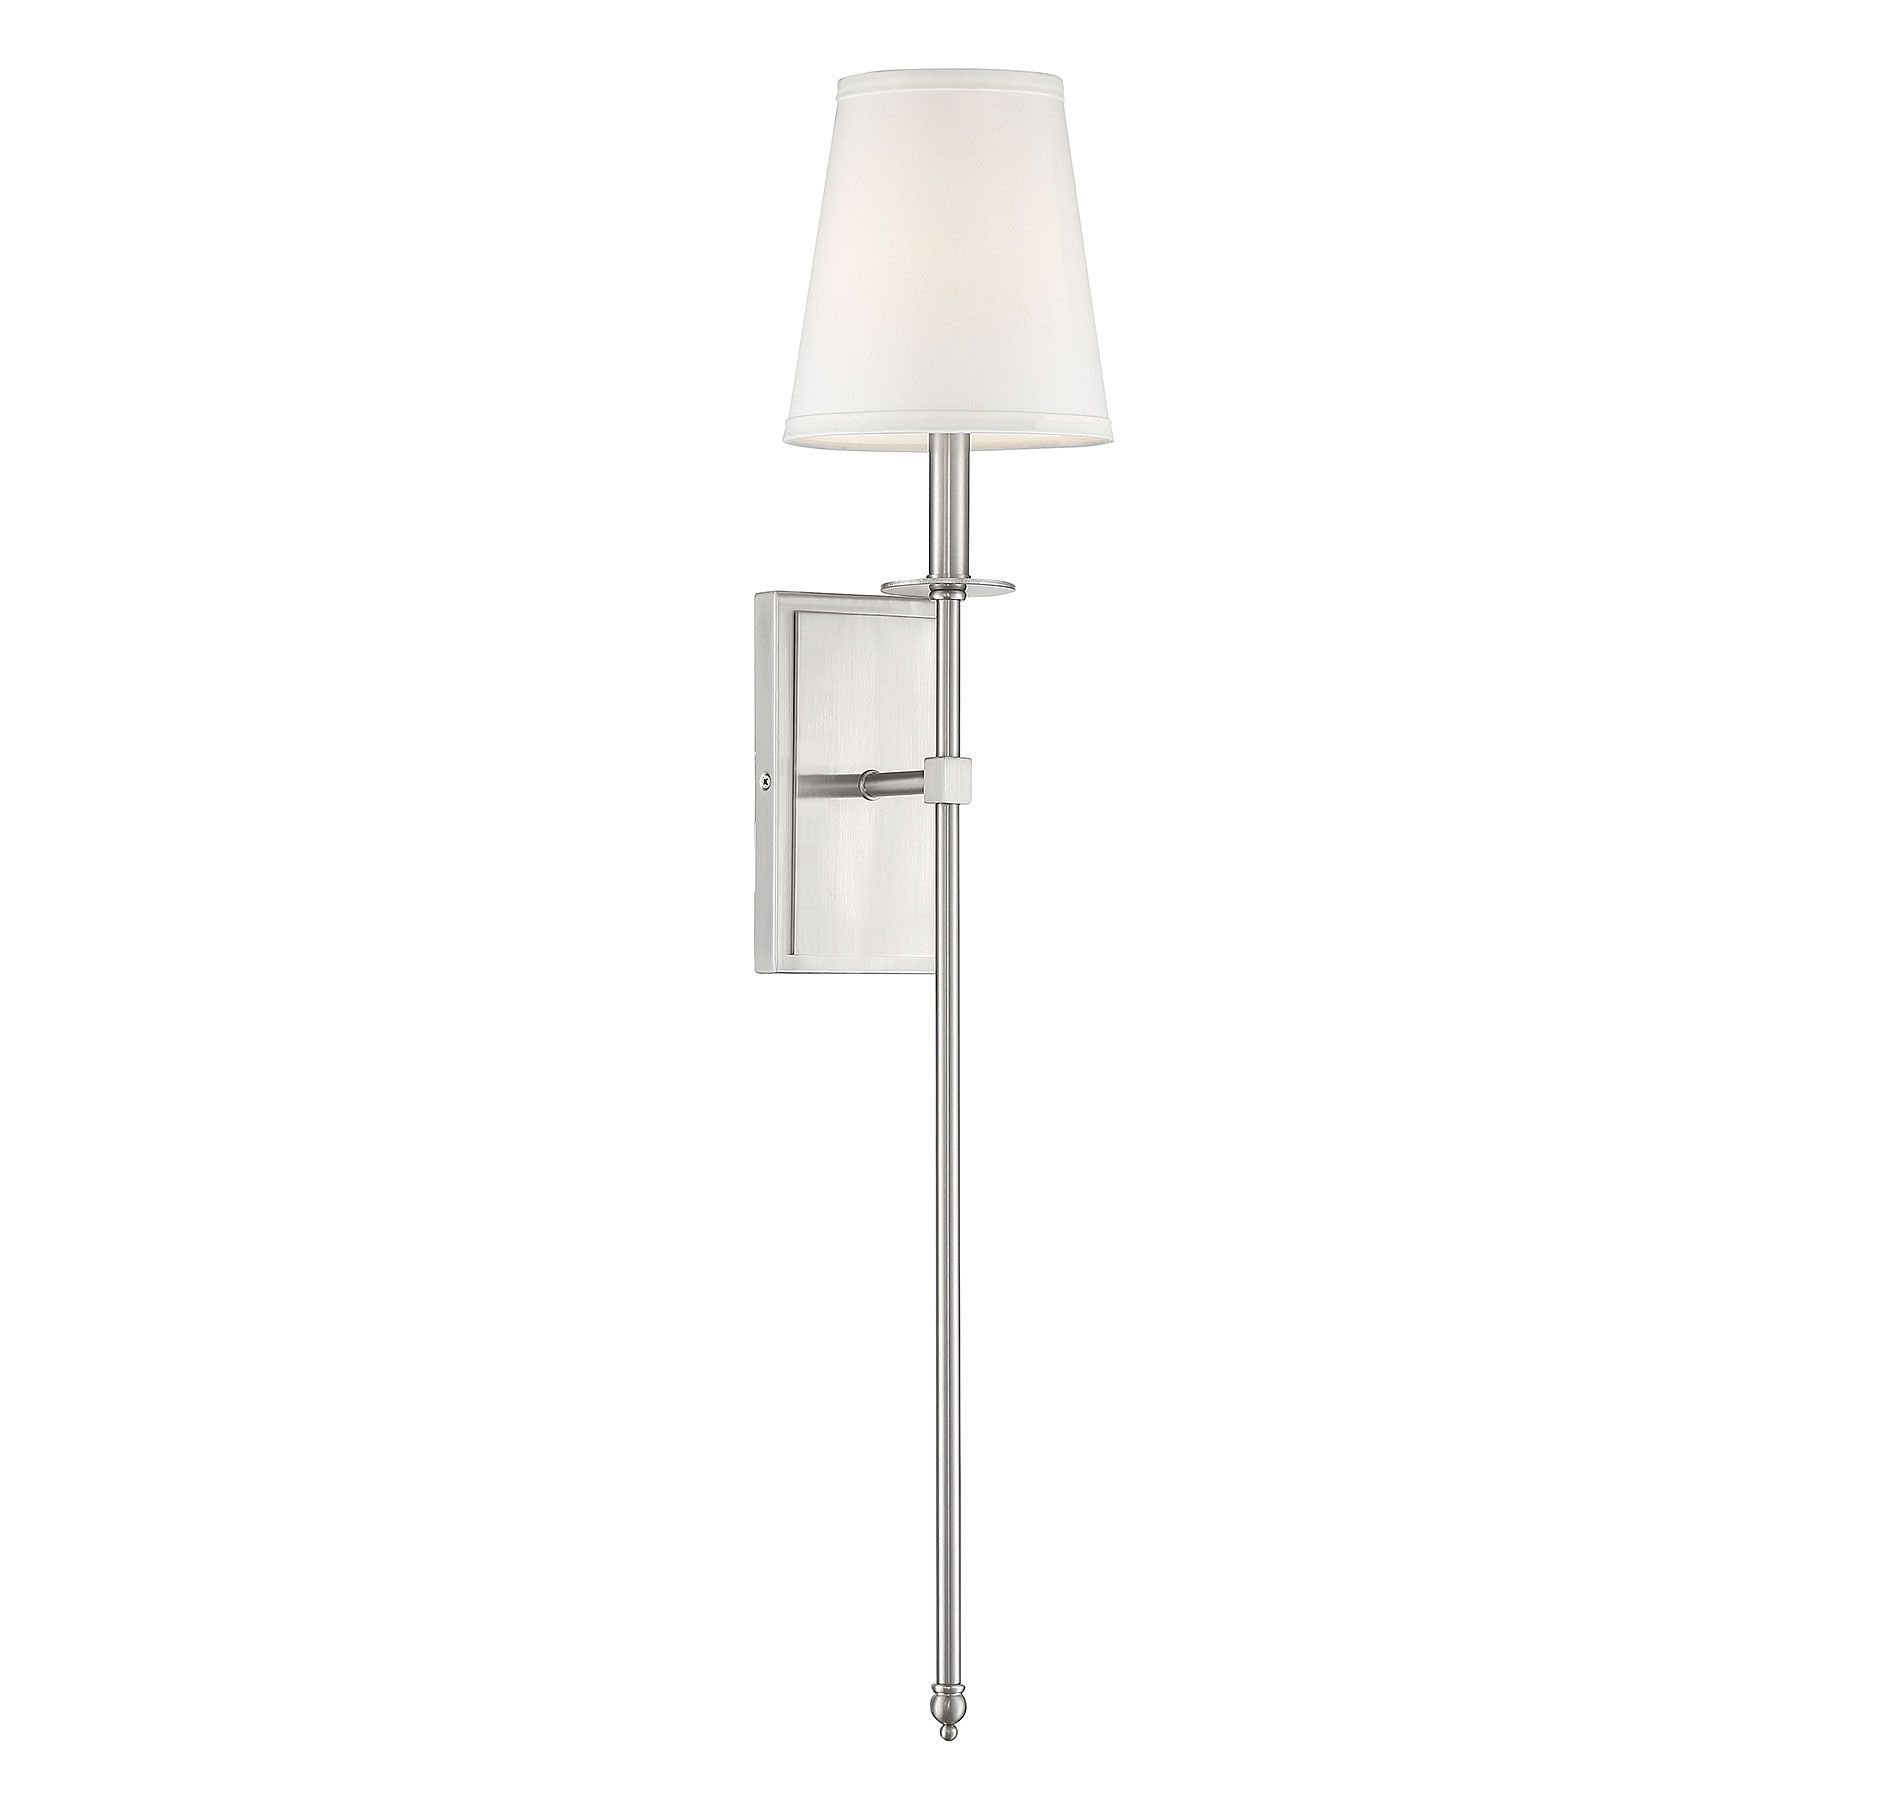 Savoy House Monroe 1 Light 34 Sconce In Satin Nickel